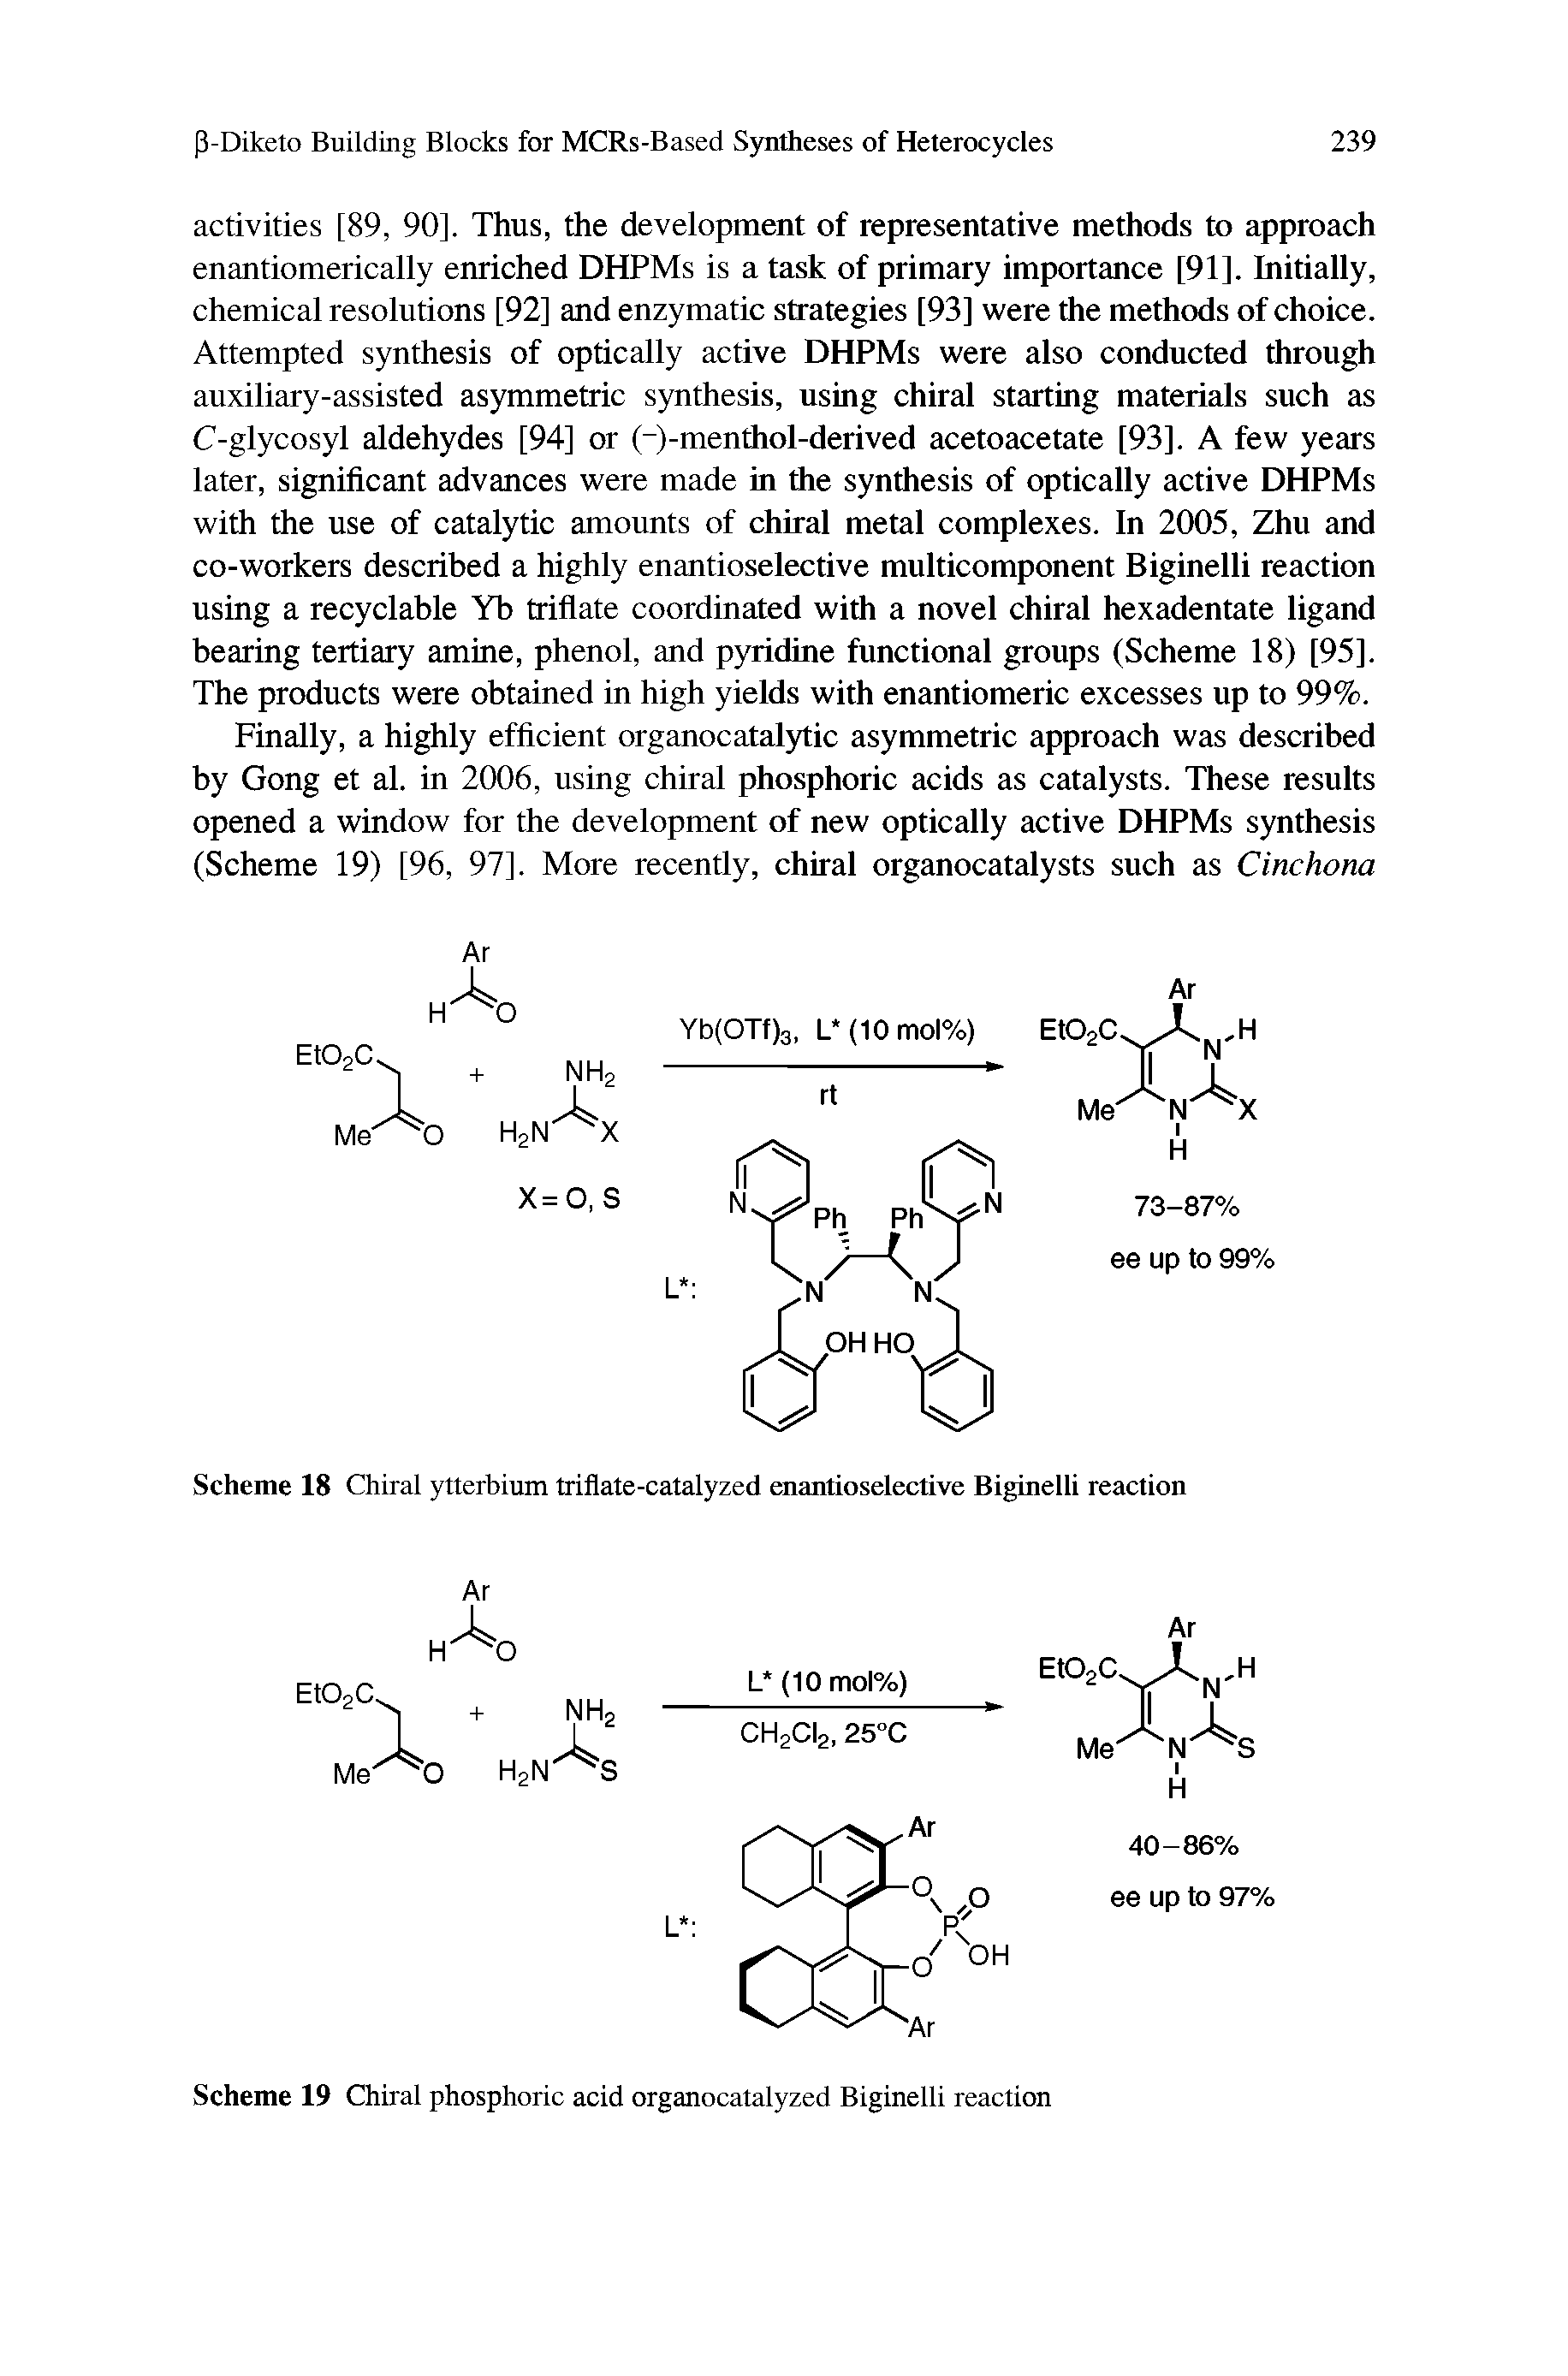 "Scheme 18 Chiral ytterbium triflate-<a href=""/info/enantioselective_ru_catalyzed"">catalyzed enantioselective</a> Biginelli reaction"